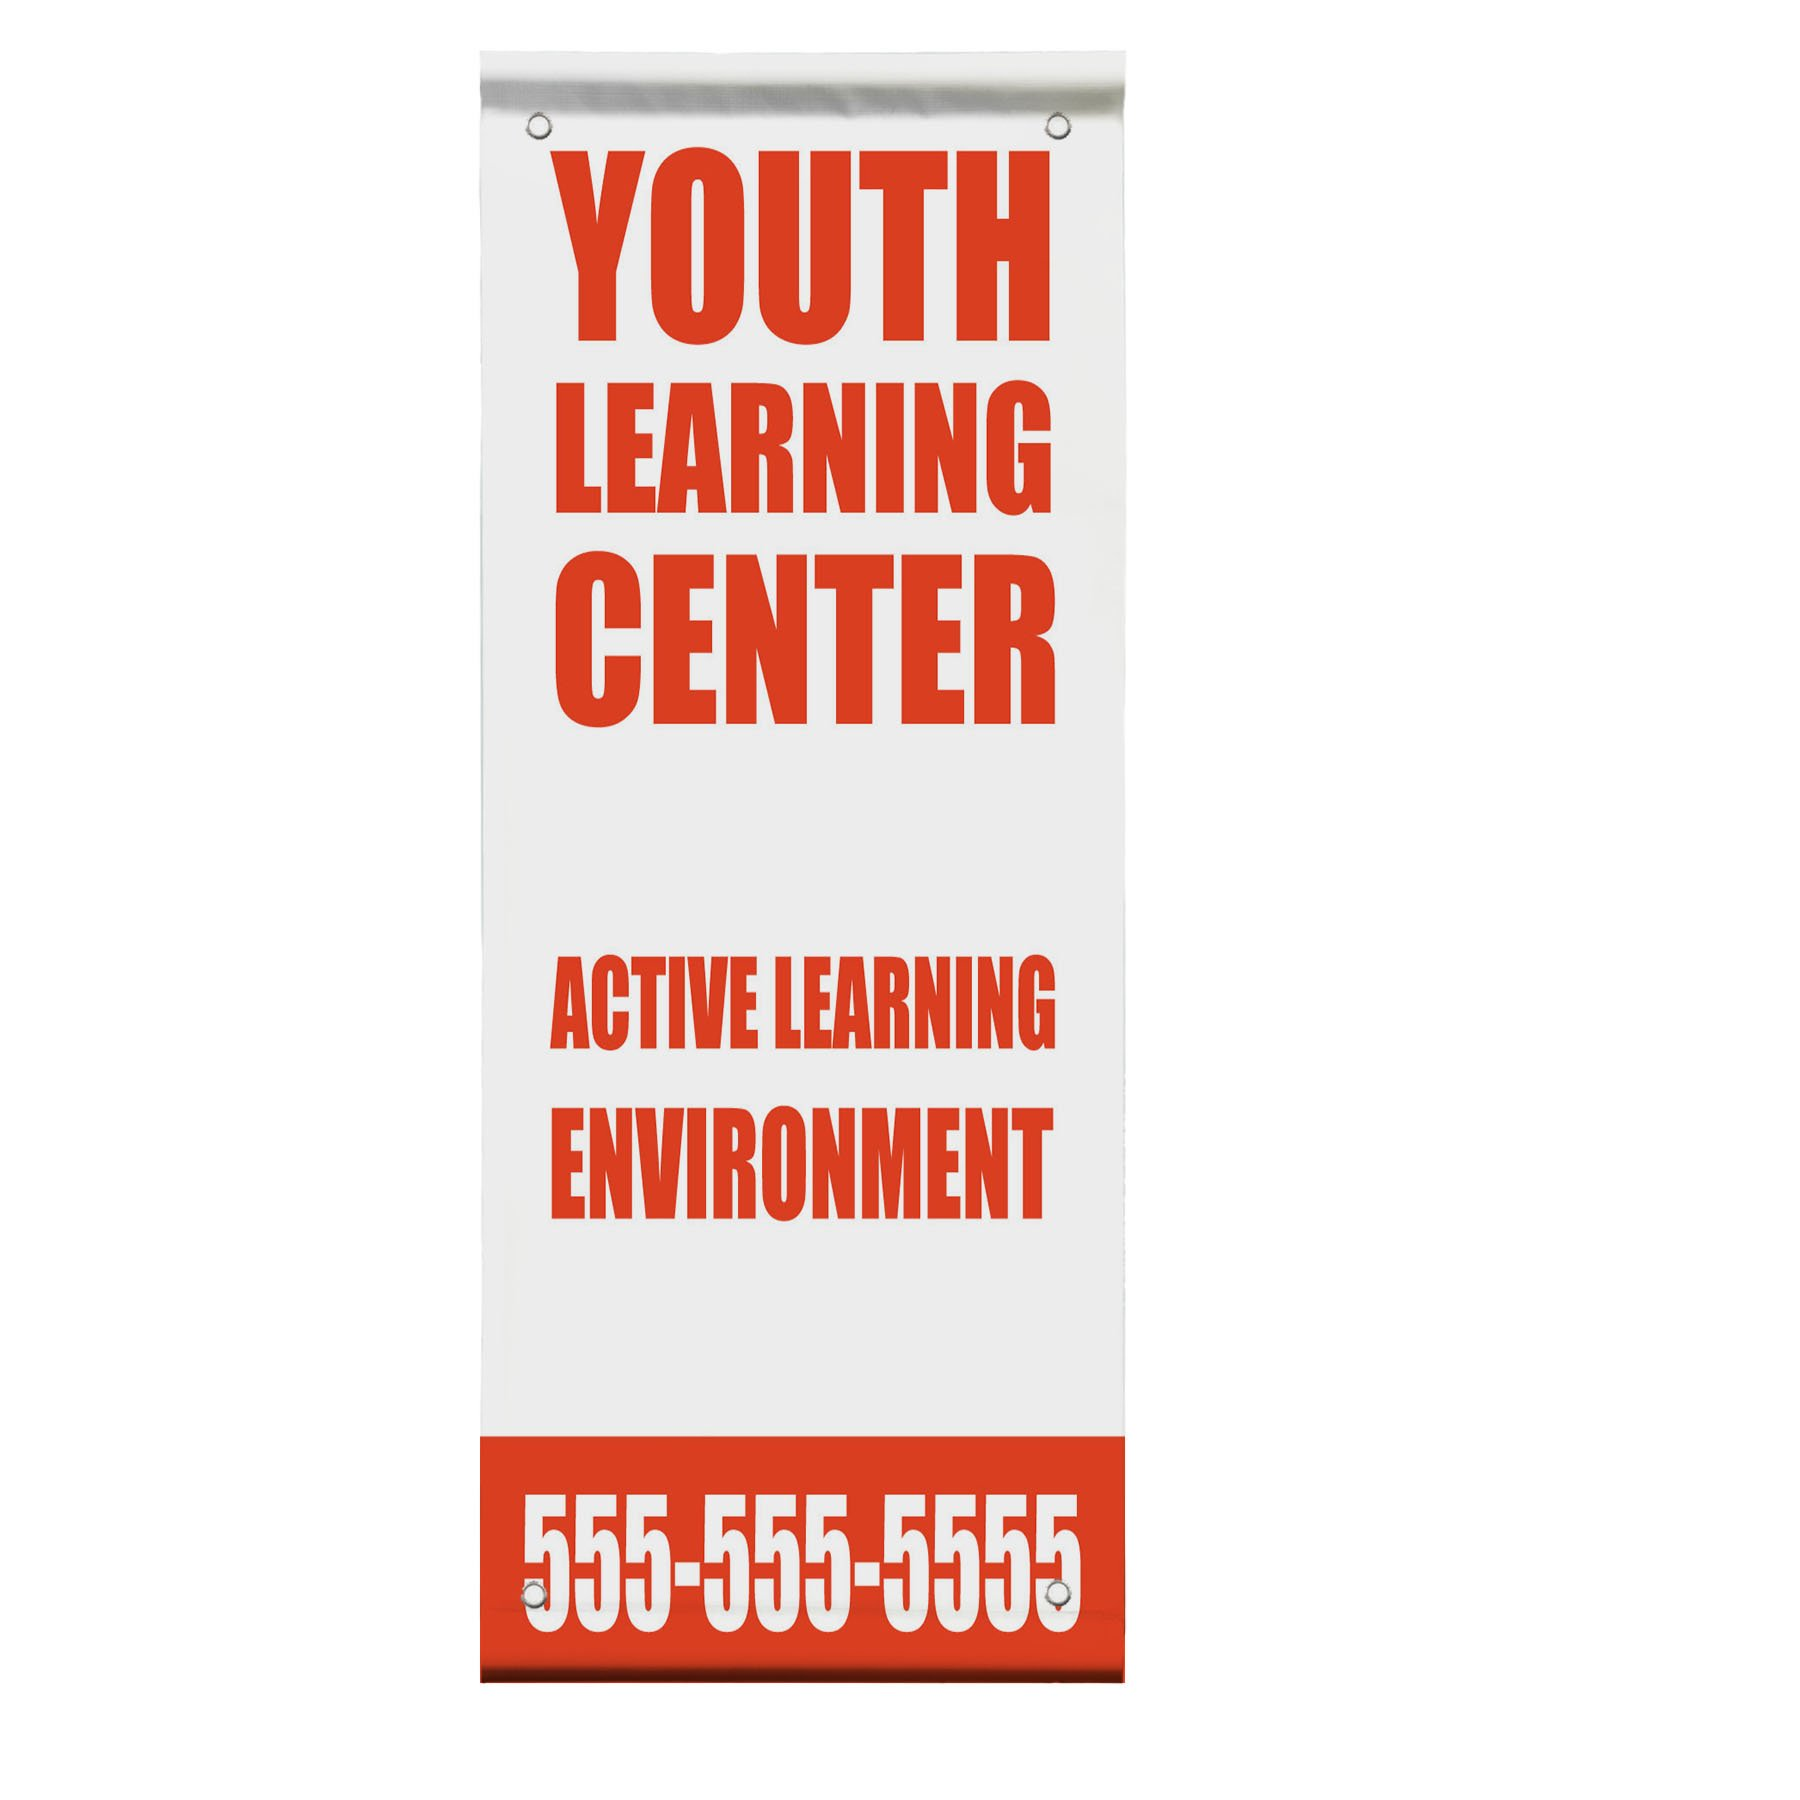 Active Learning Child Care Day Care School Custom Double Sided Pole Banner Sign 36 in x 72 in w/ Pole Bracket